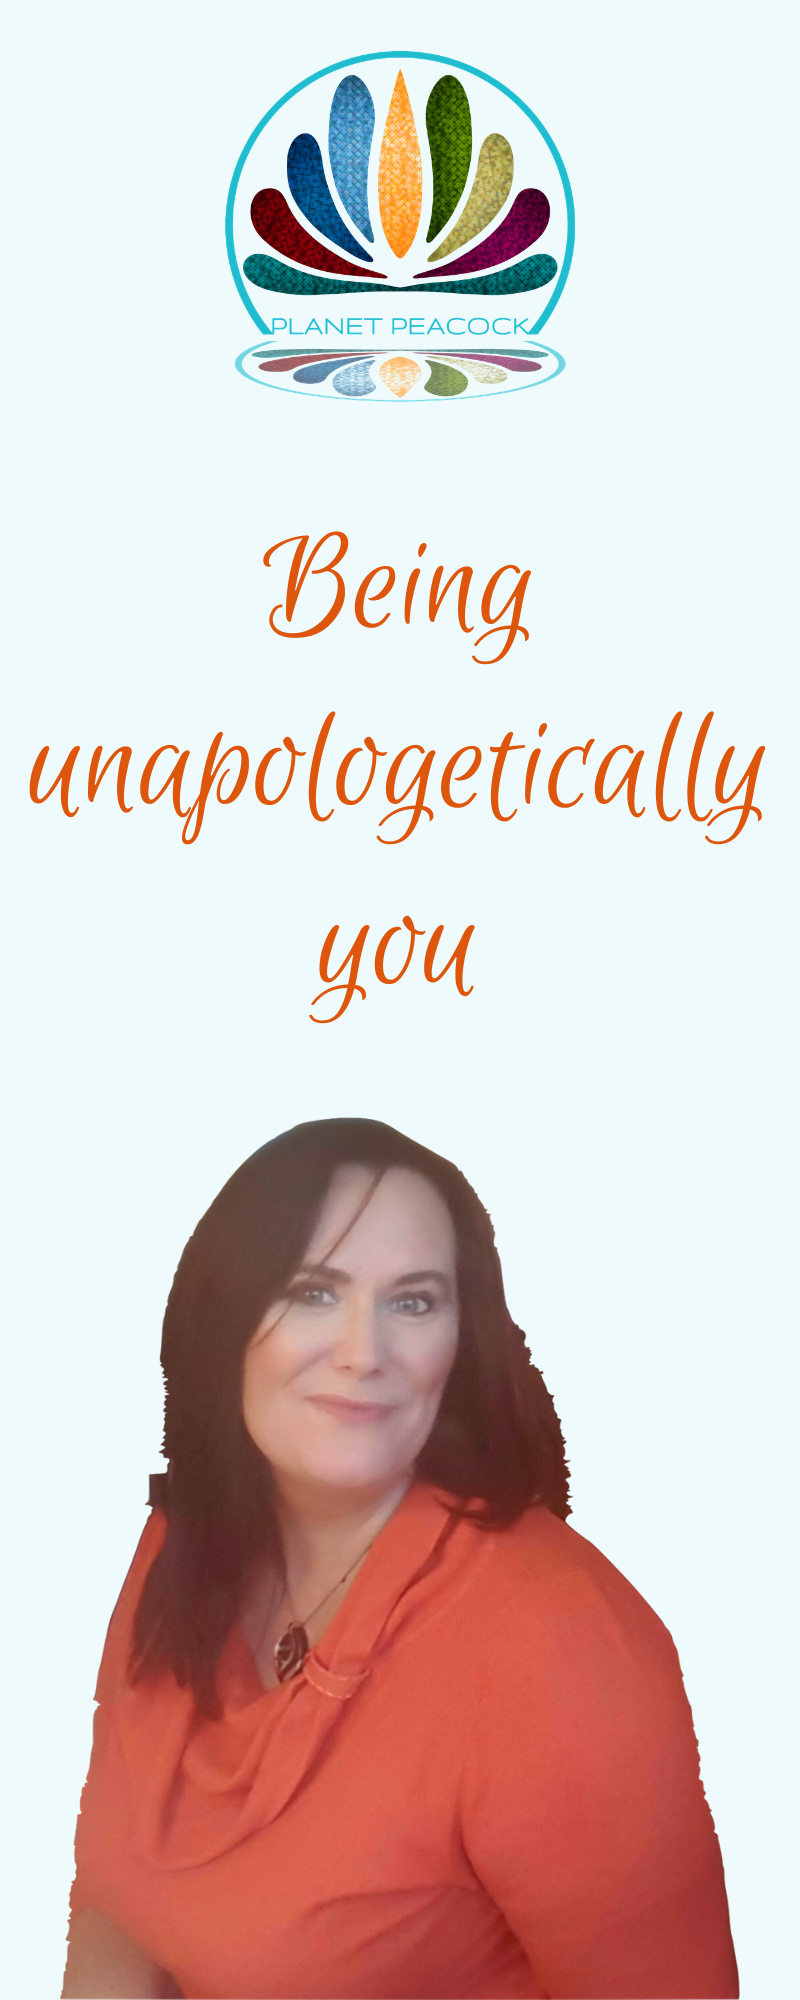 Unapologetically Ambitious PDF Free download